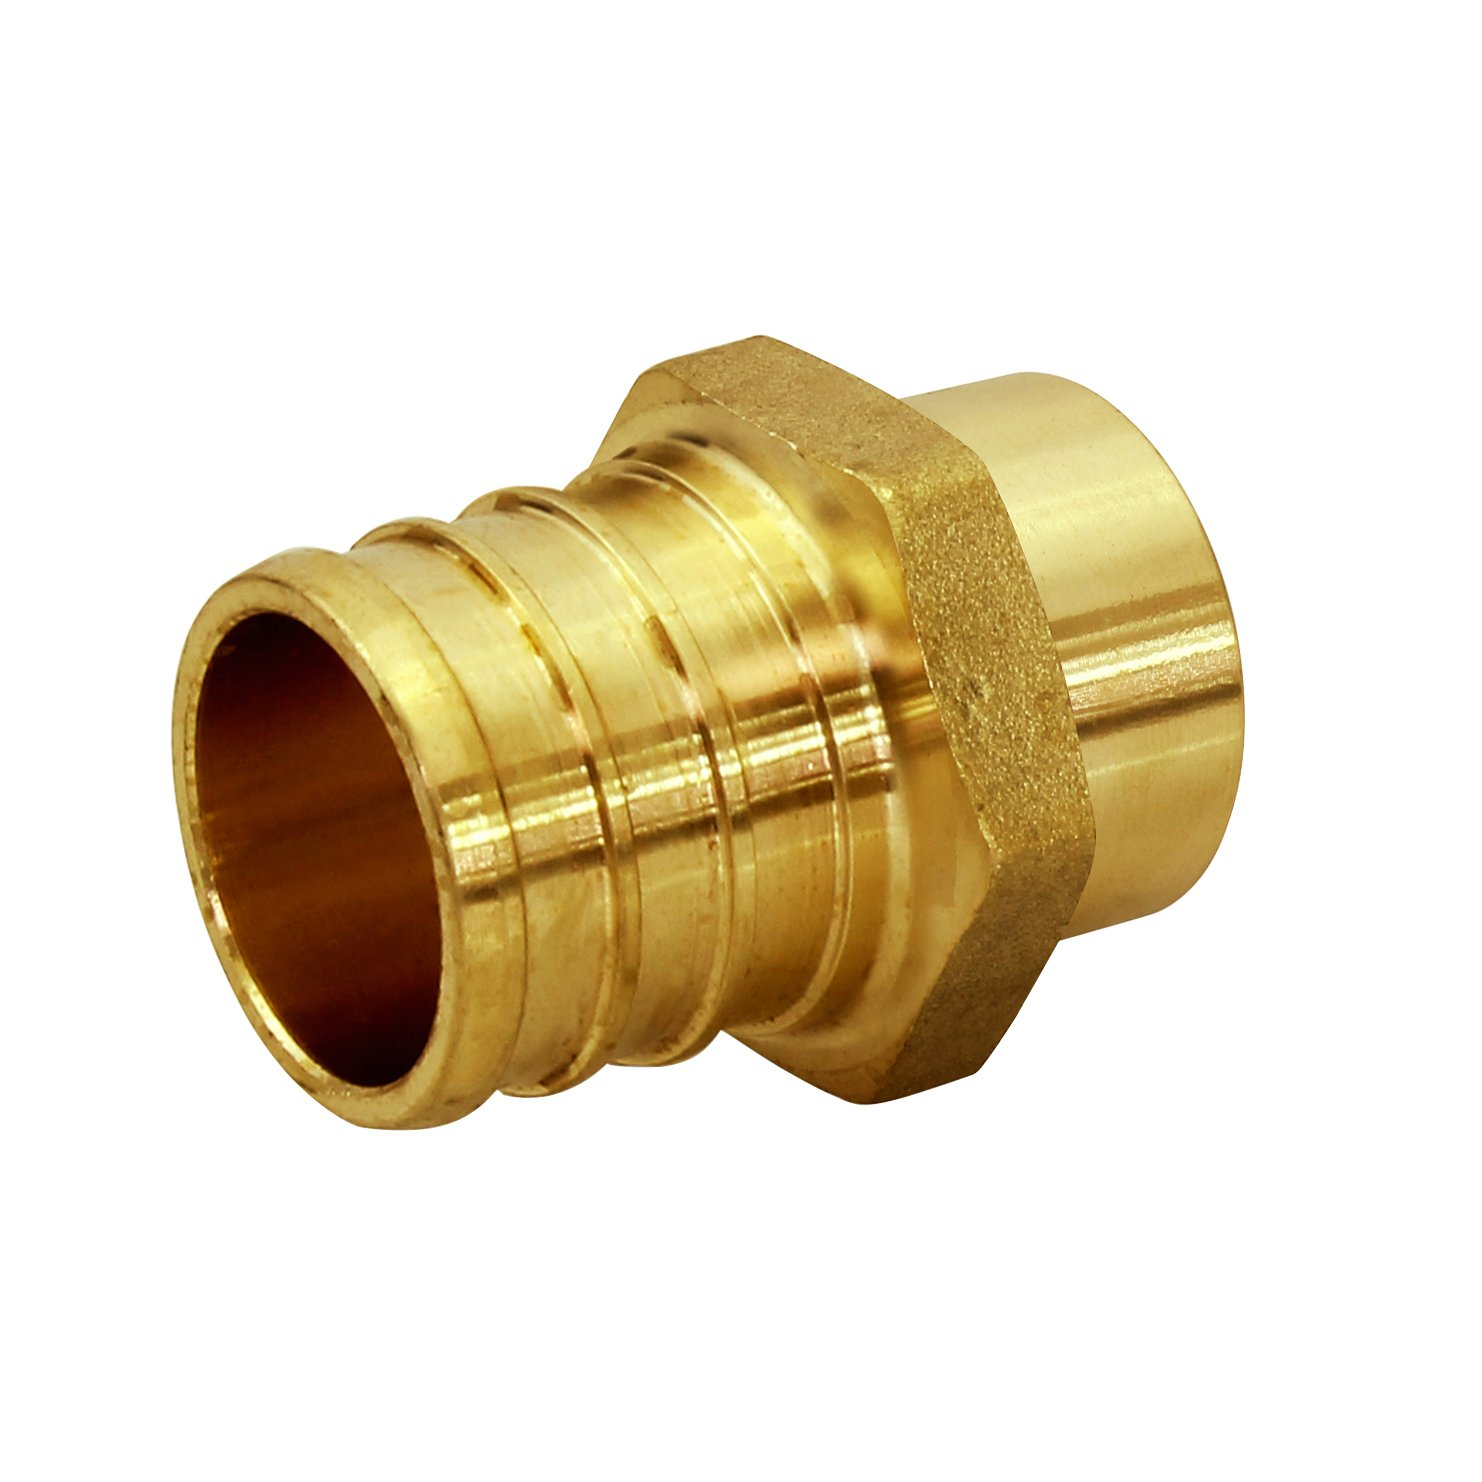 Everflow PSMA3412-NL 3/4 Inch x 1/2 Inch Lead Free Brass Adapter PEX X MALE SWEAT, Brass Construction, Compatible w/ PEX Piping, Low-Cost plumbing Connection, Durability & Reliability, Easy to Install